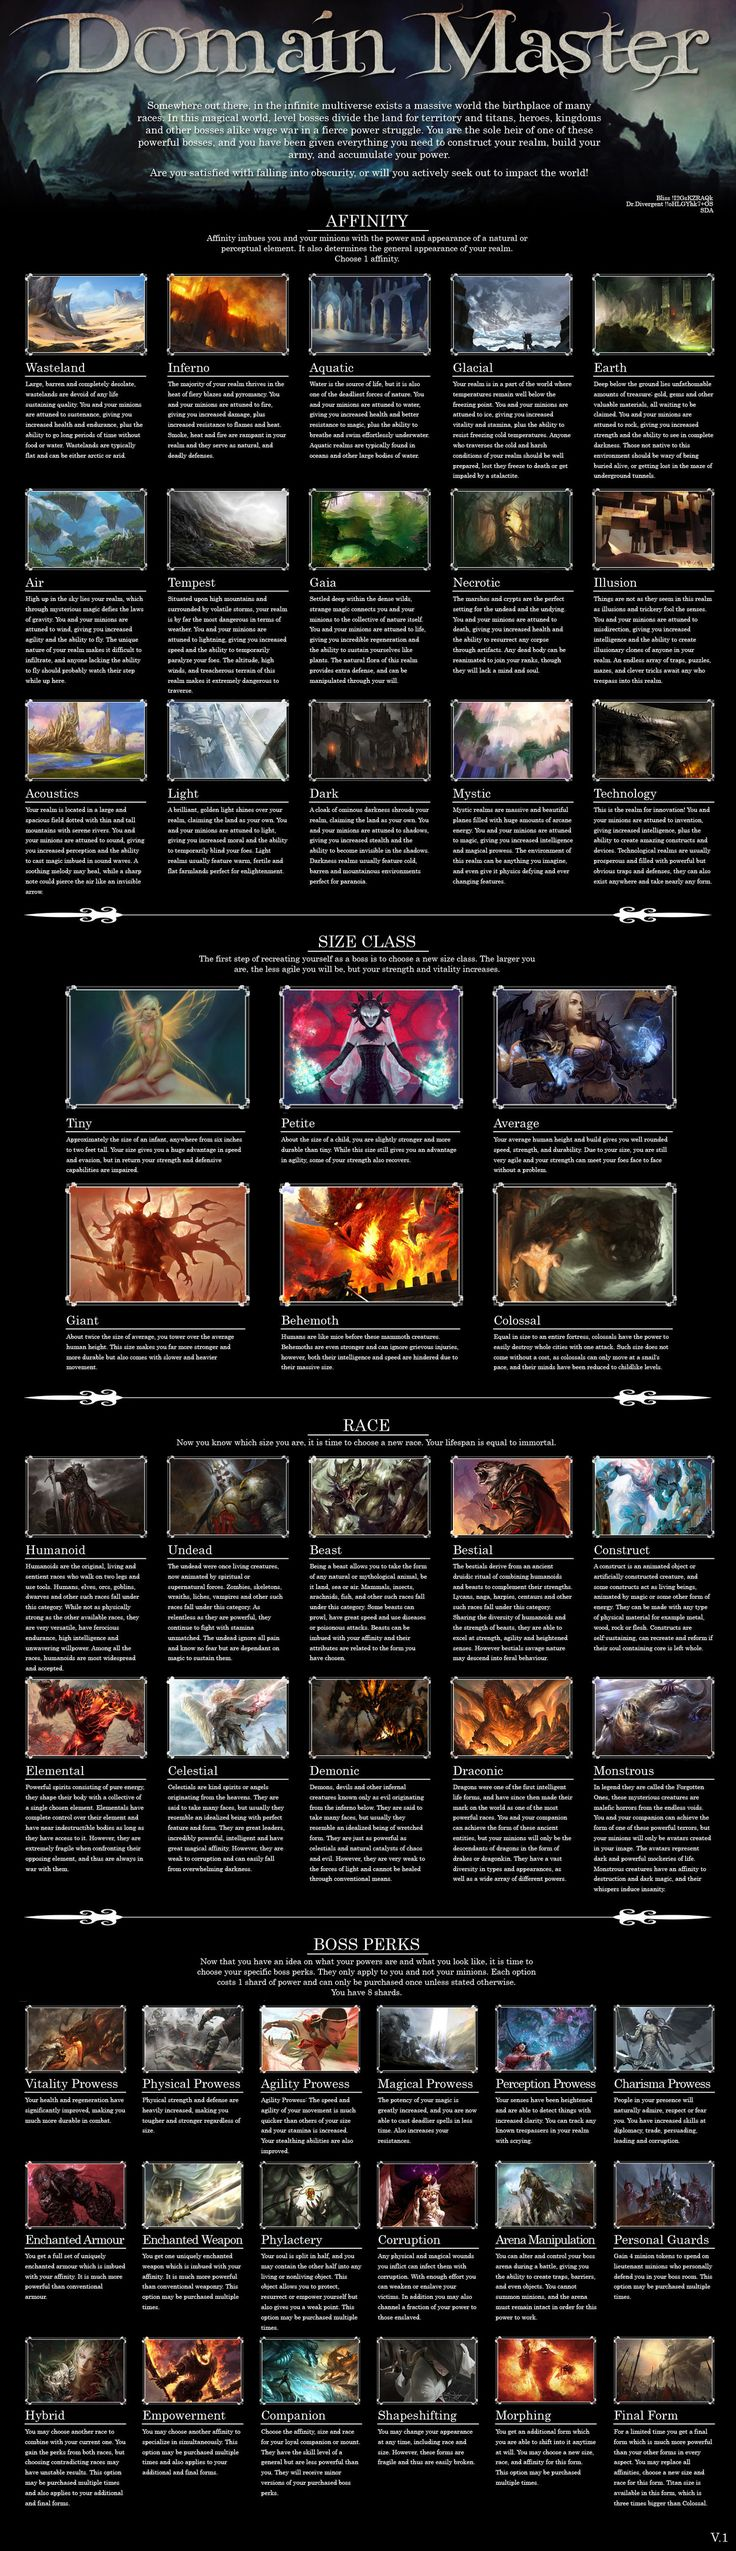 CYOA = choose your own adventures. Takes a while but read it through and you should be able to follow on. Post your results!